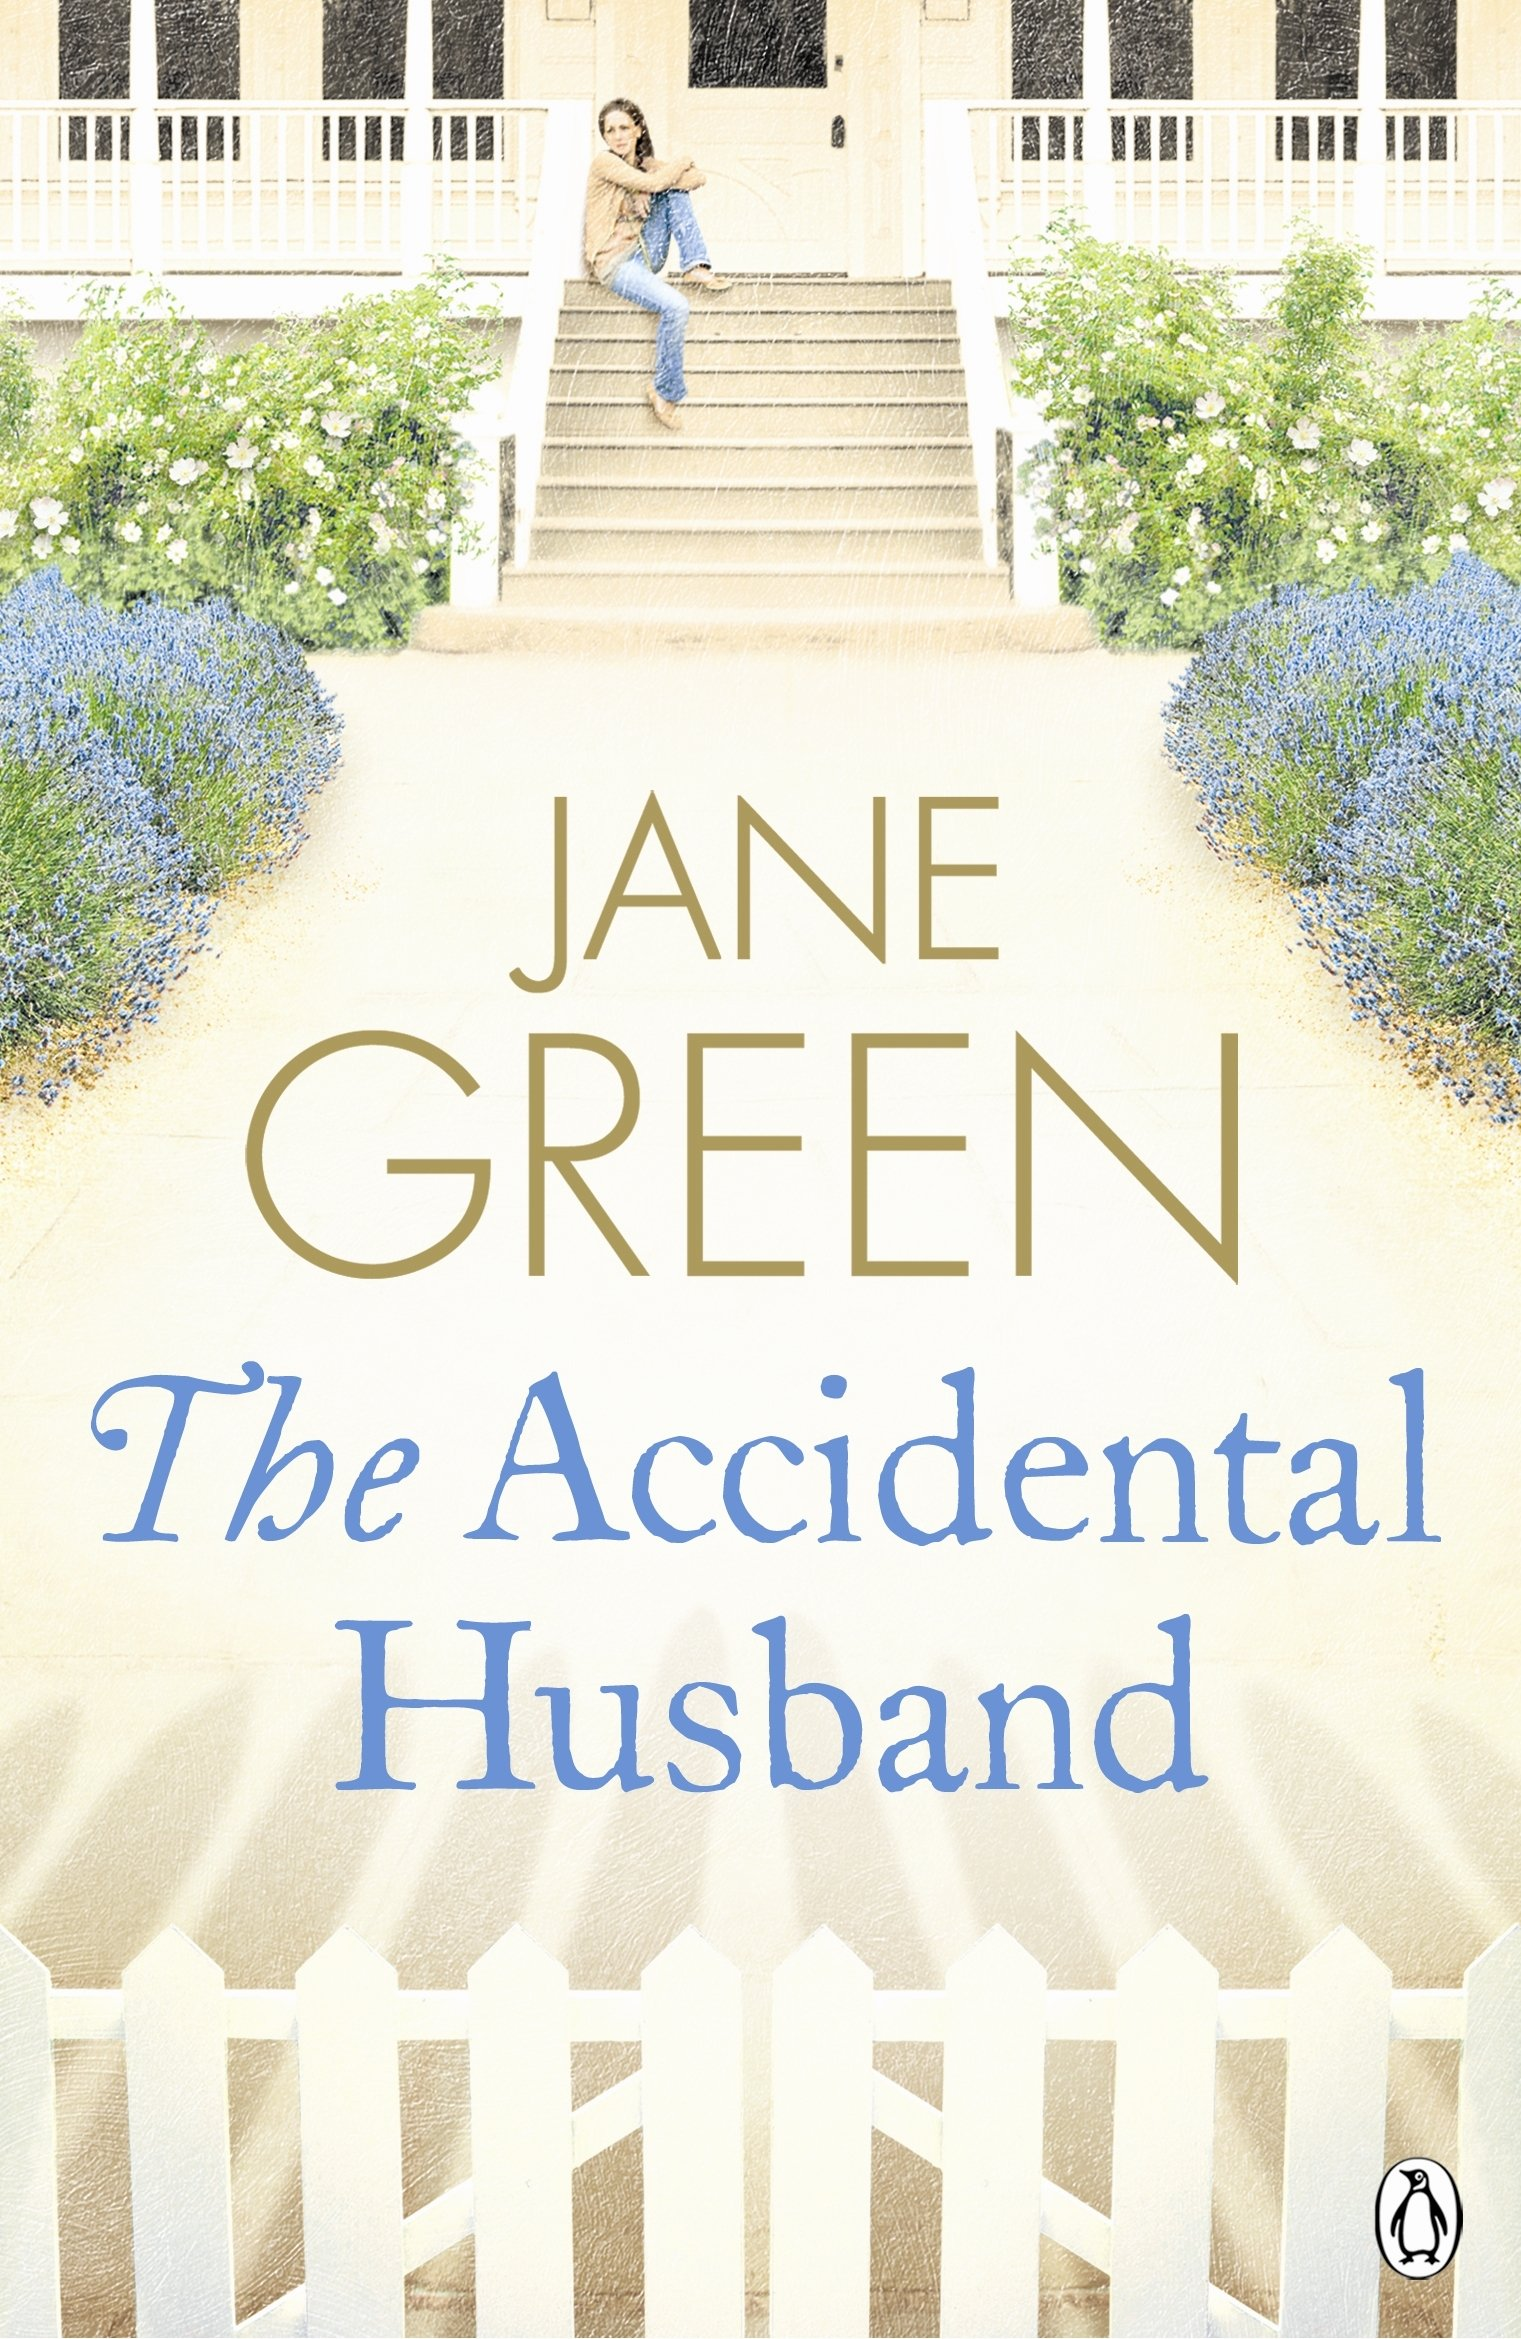 the accidental husband by jane green to read online